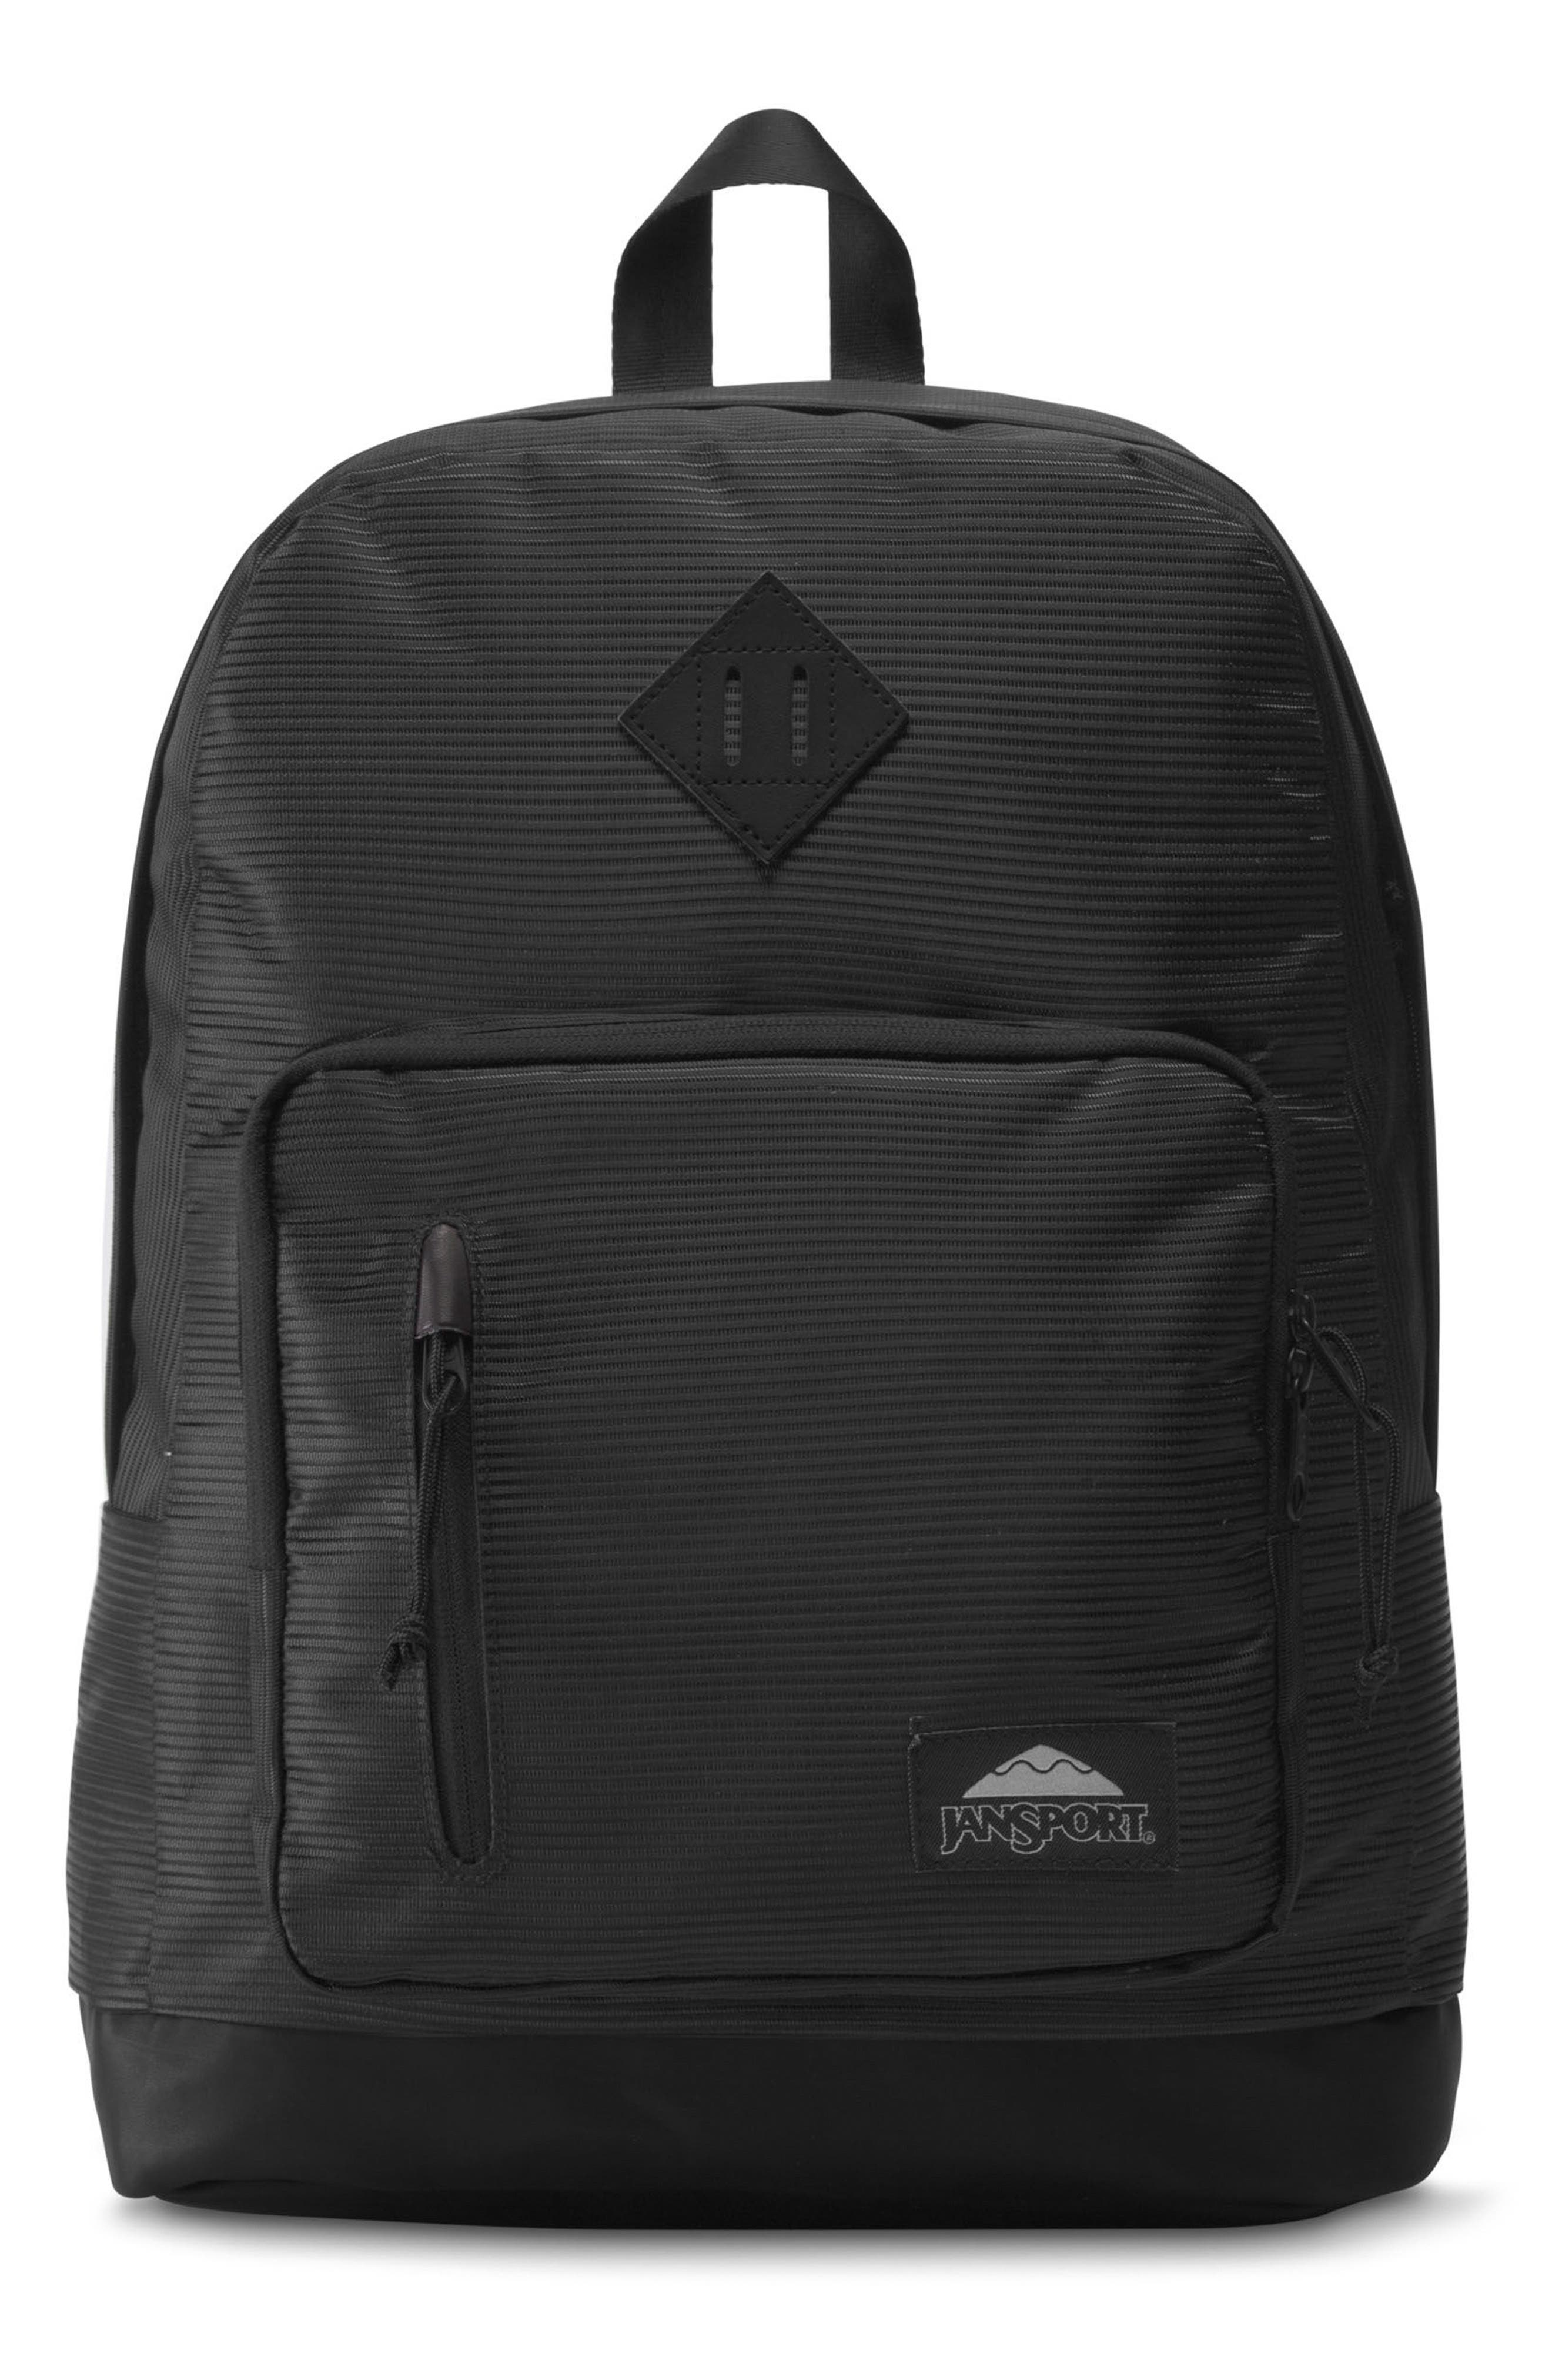 Jansport Axiom Backpack